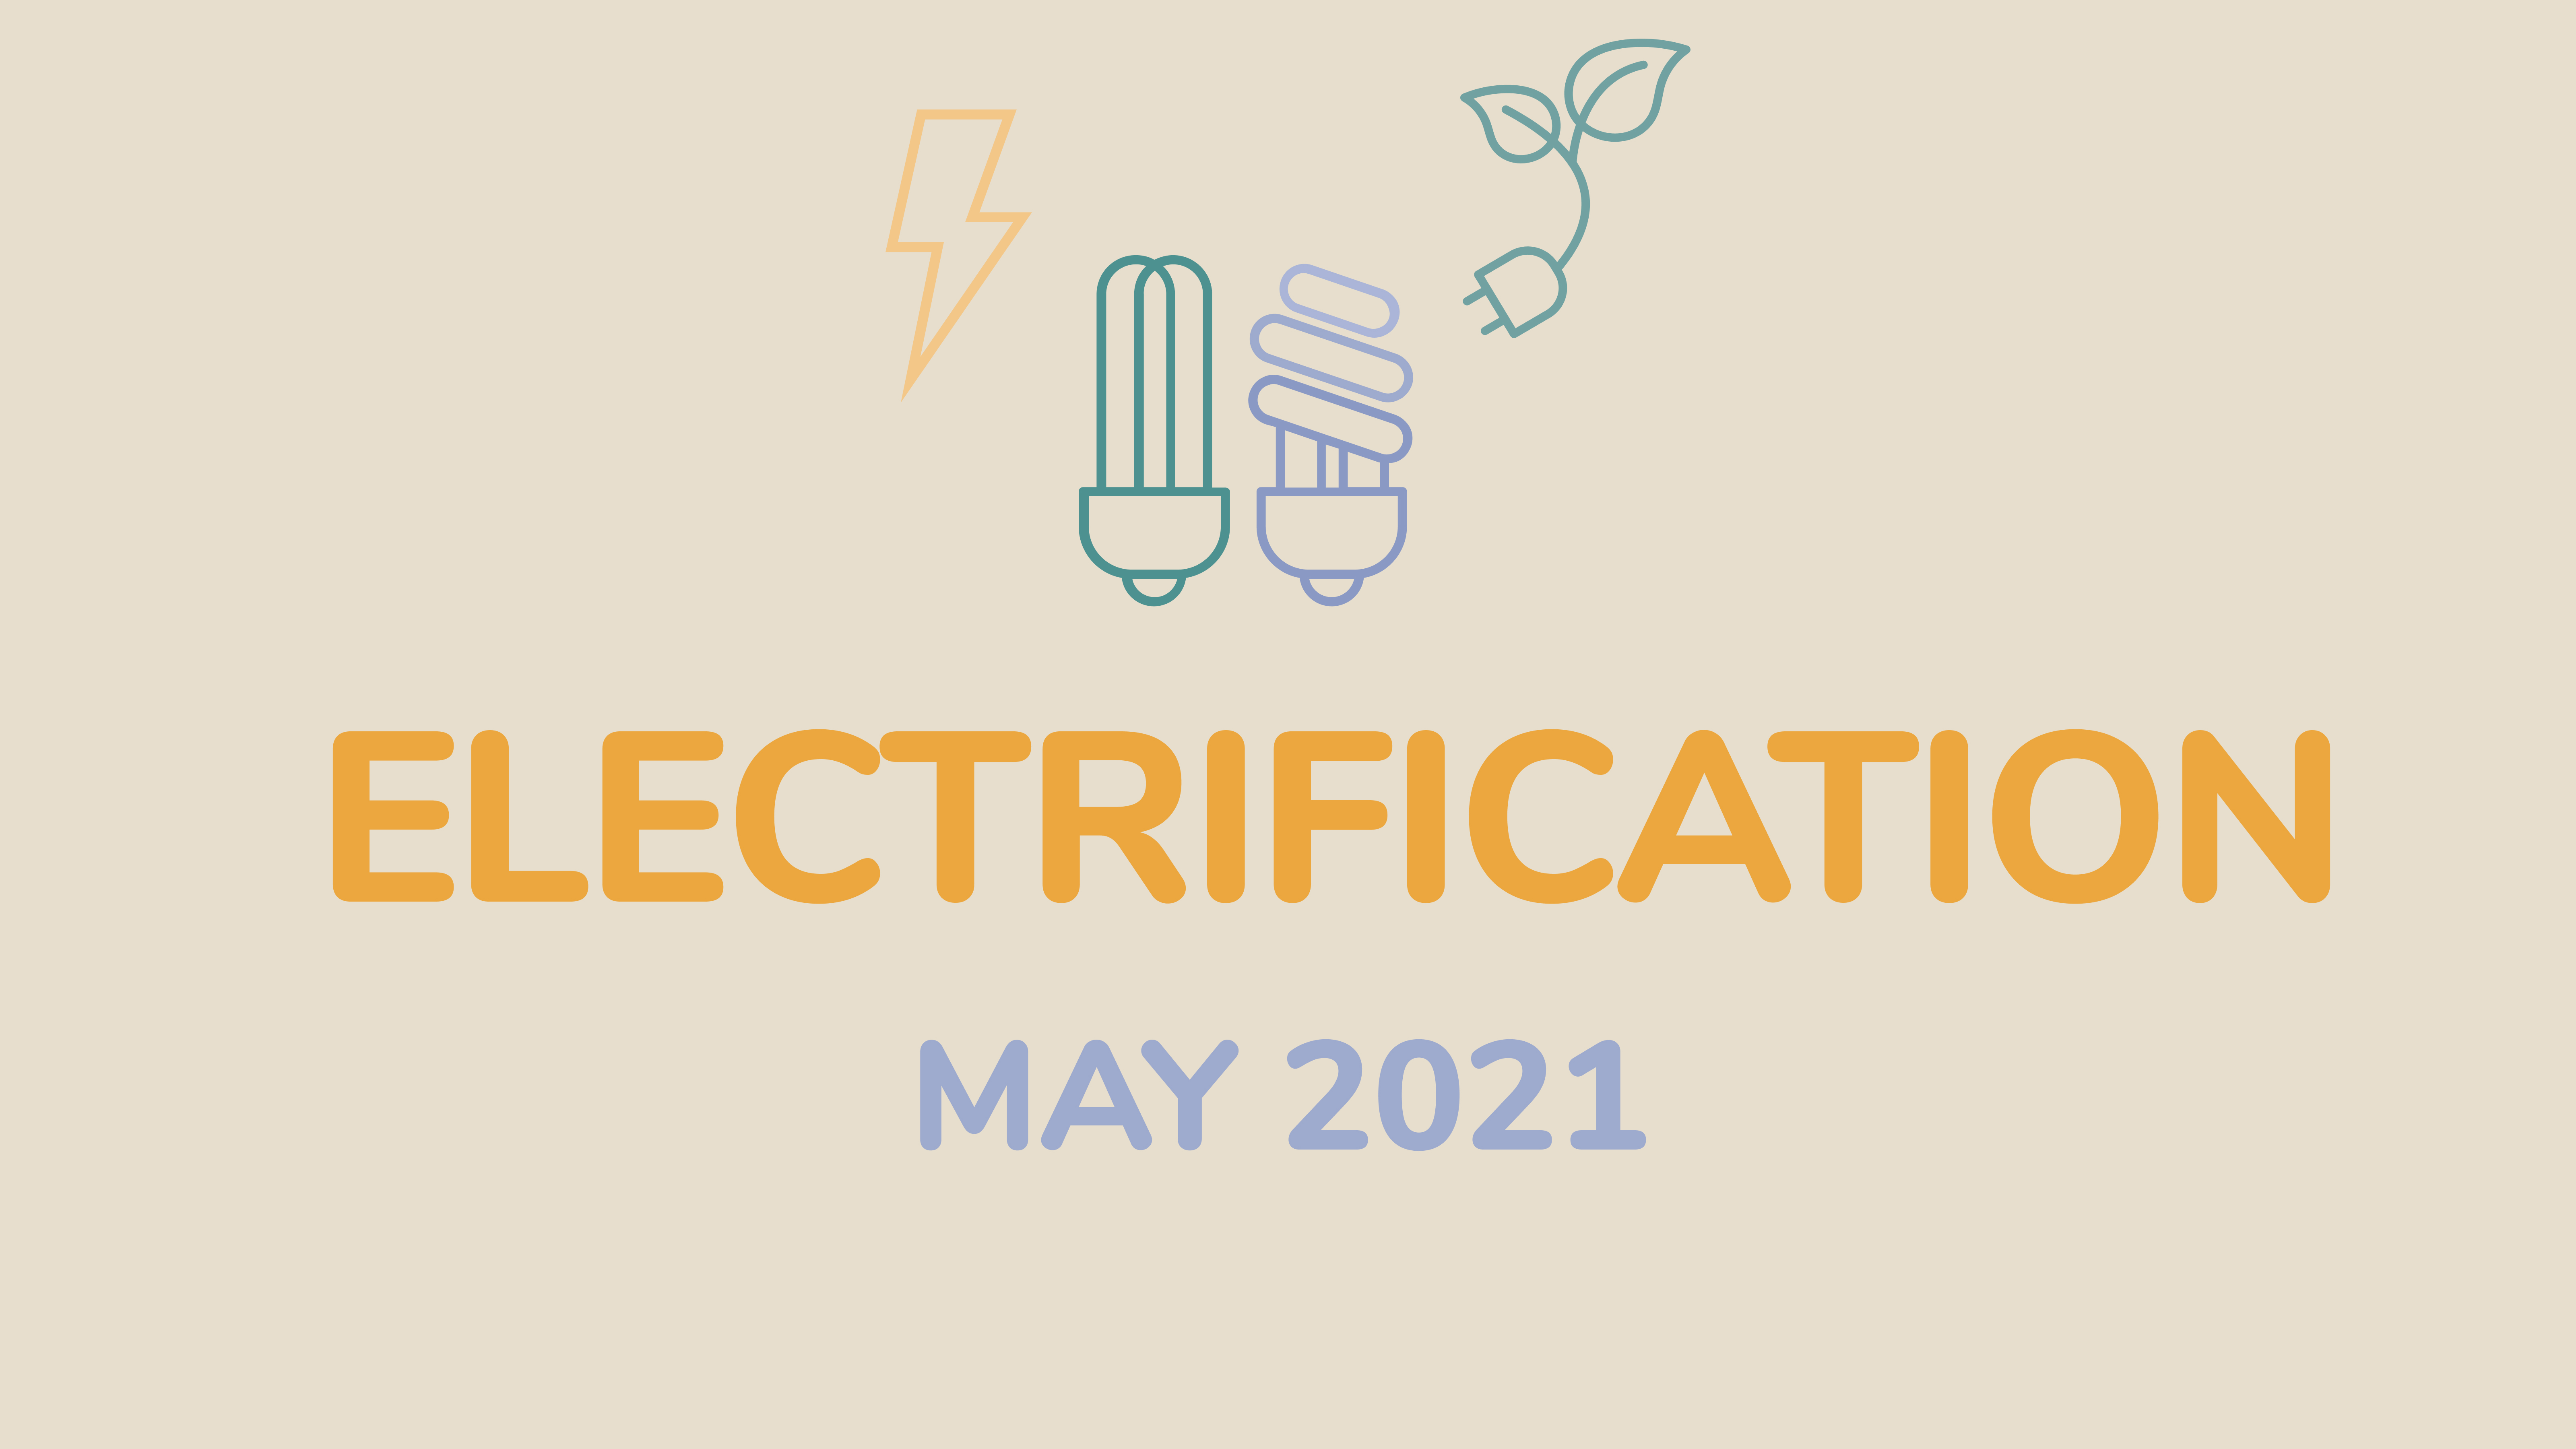 Electrification and energy